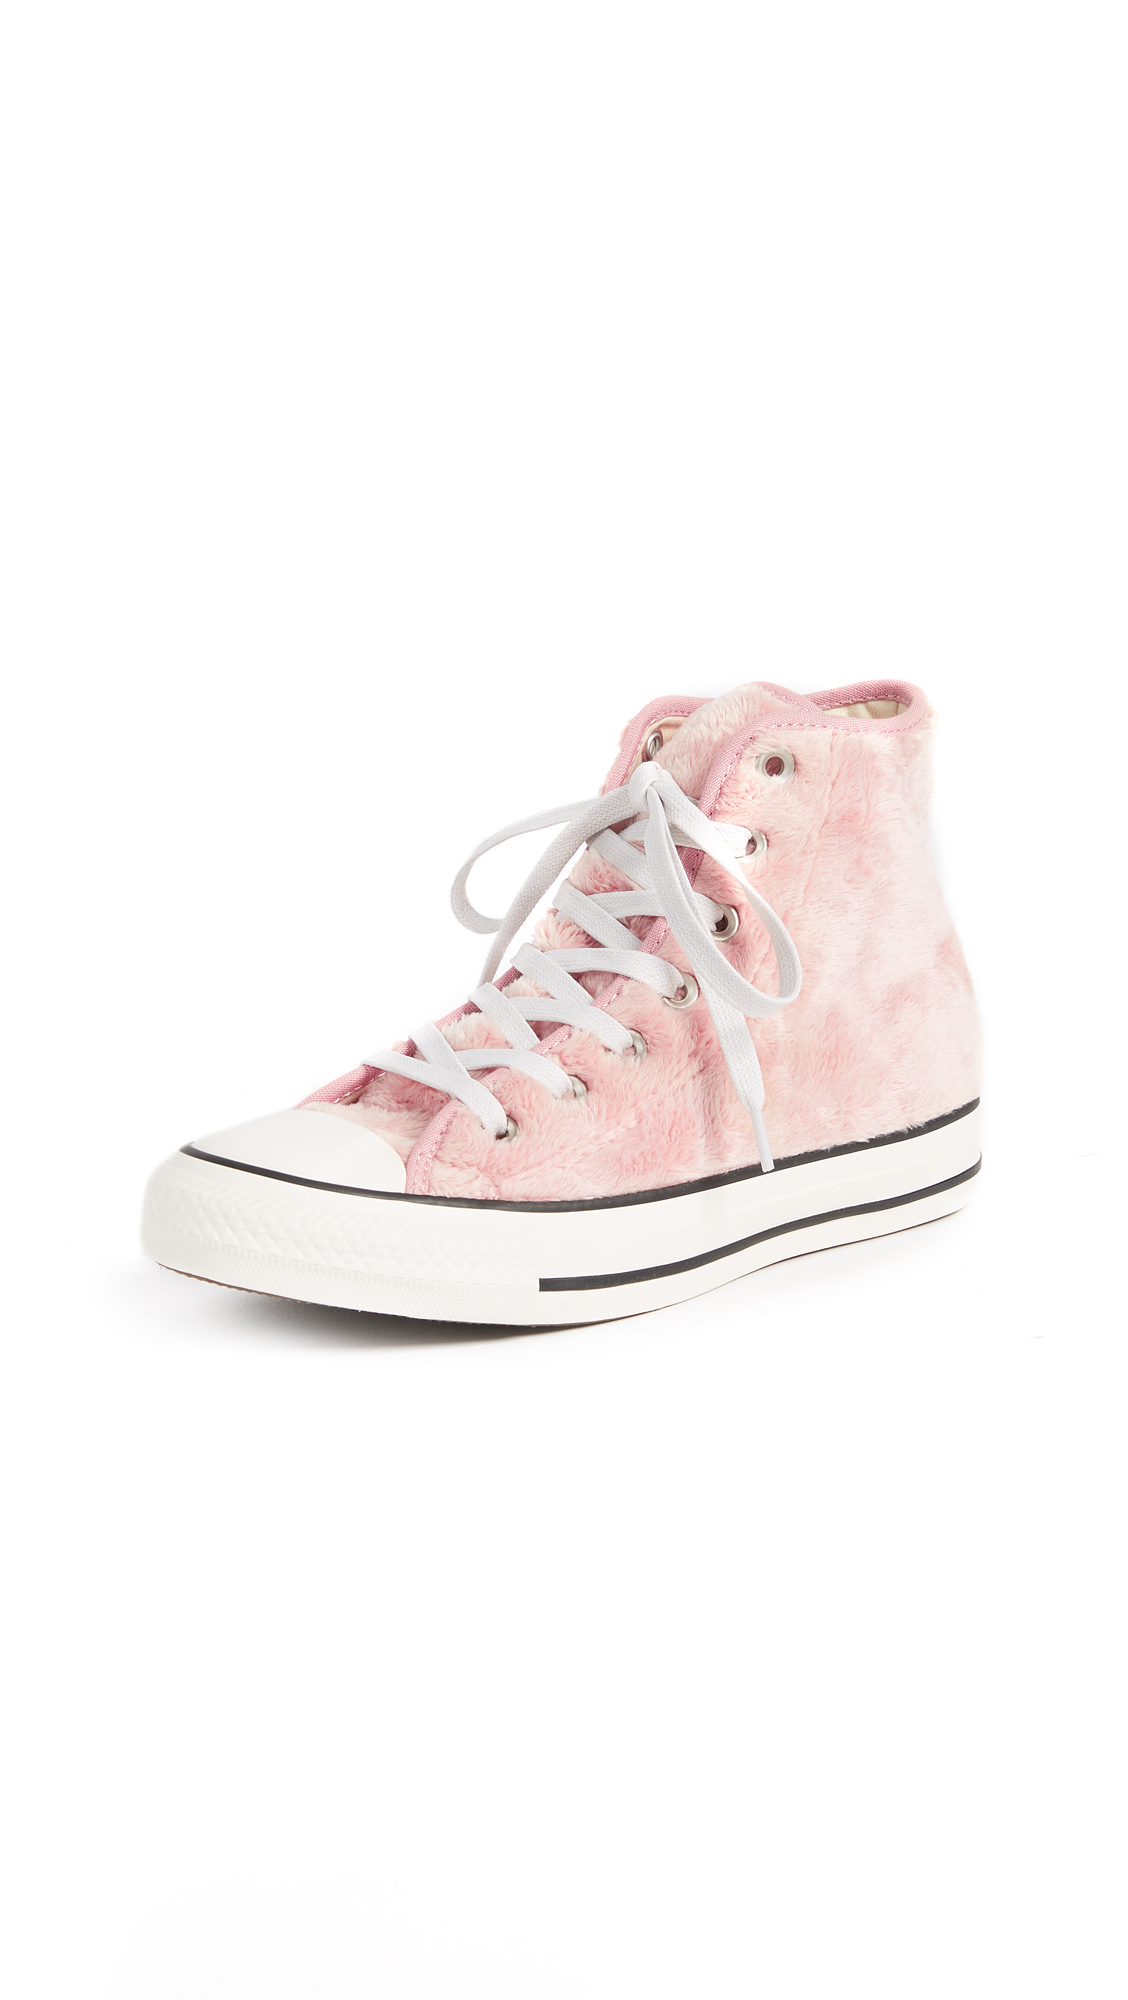 Converse Chuck Taylor All Star High Sherpa Sneakers - Rose Tan/Black/White